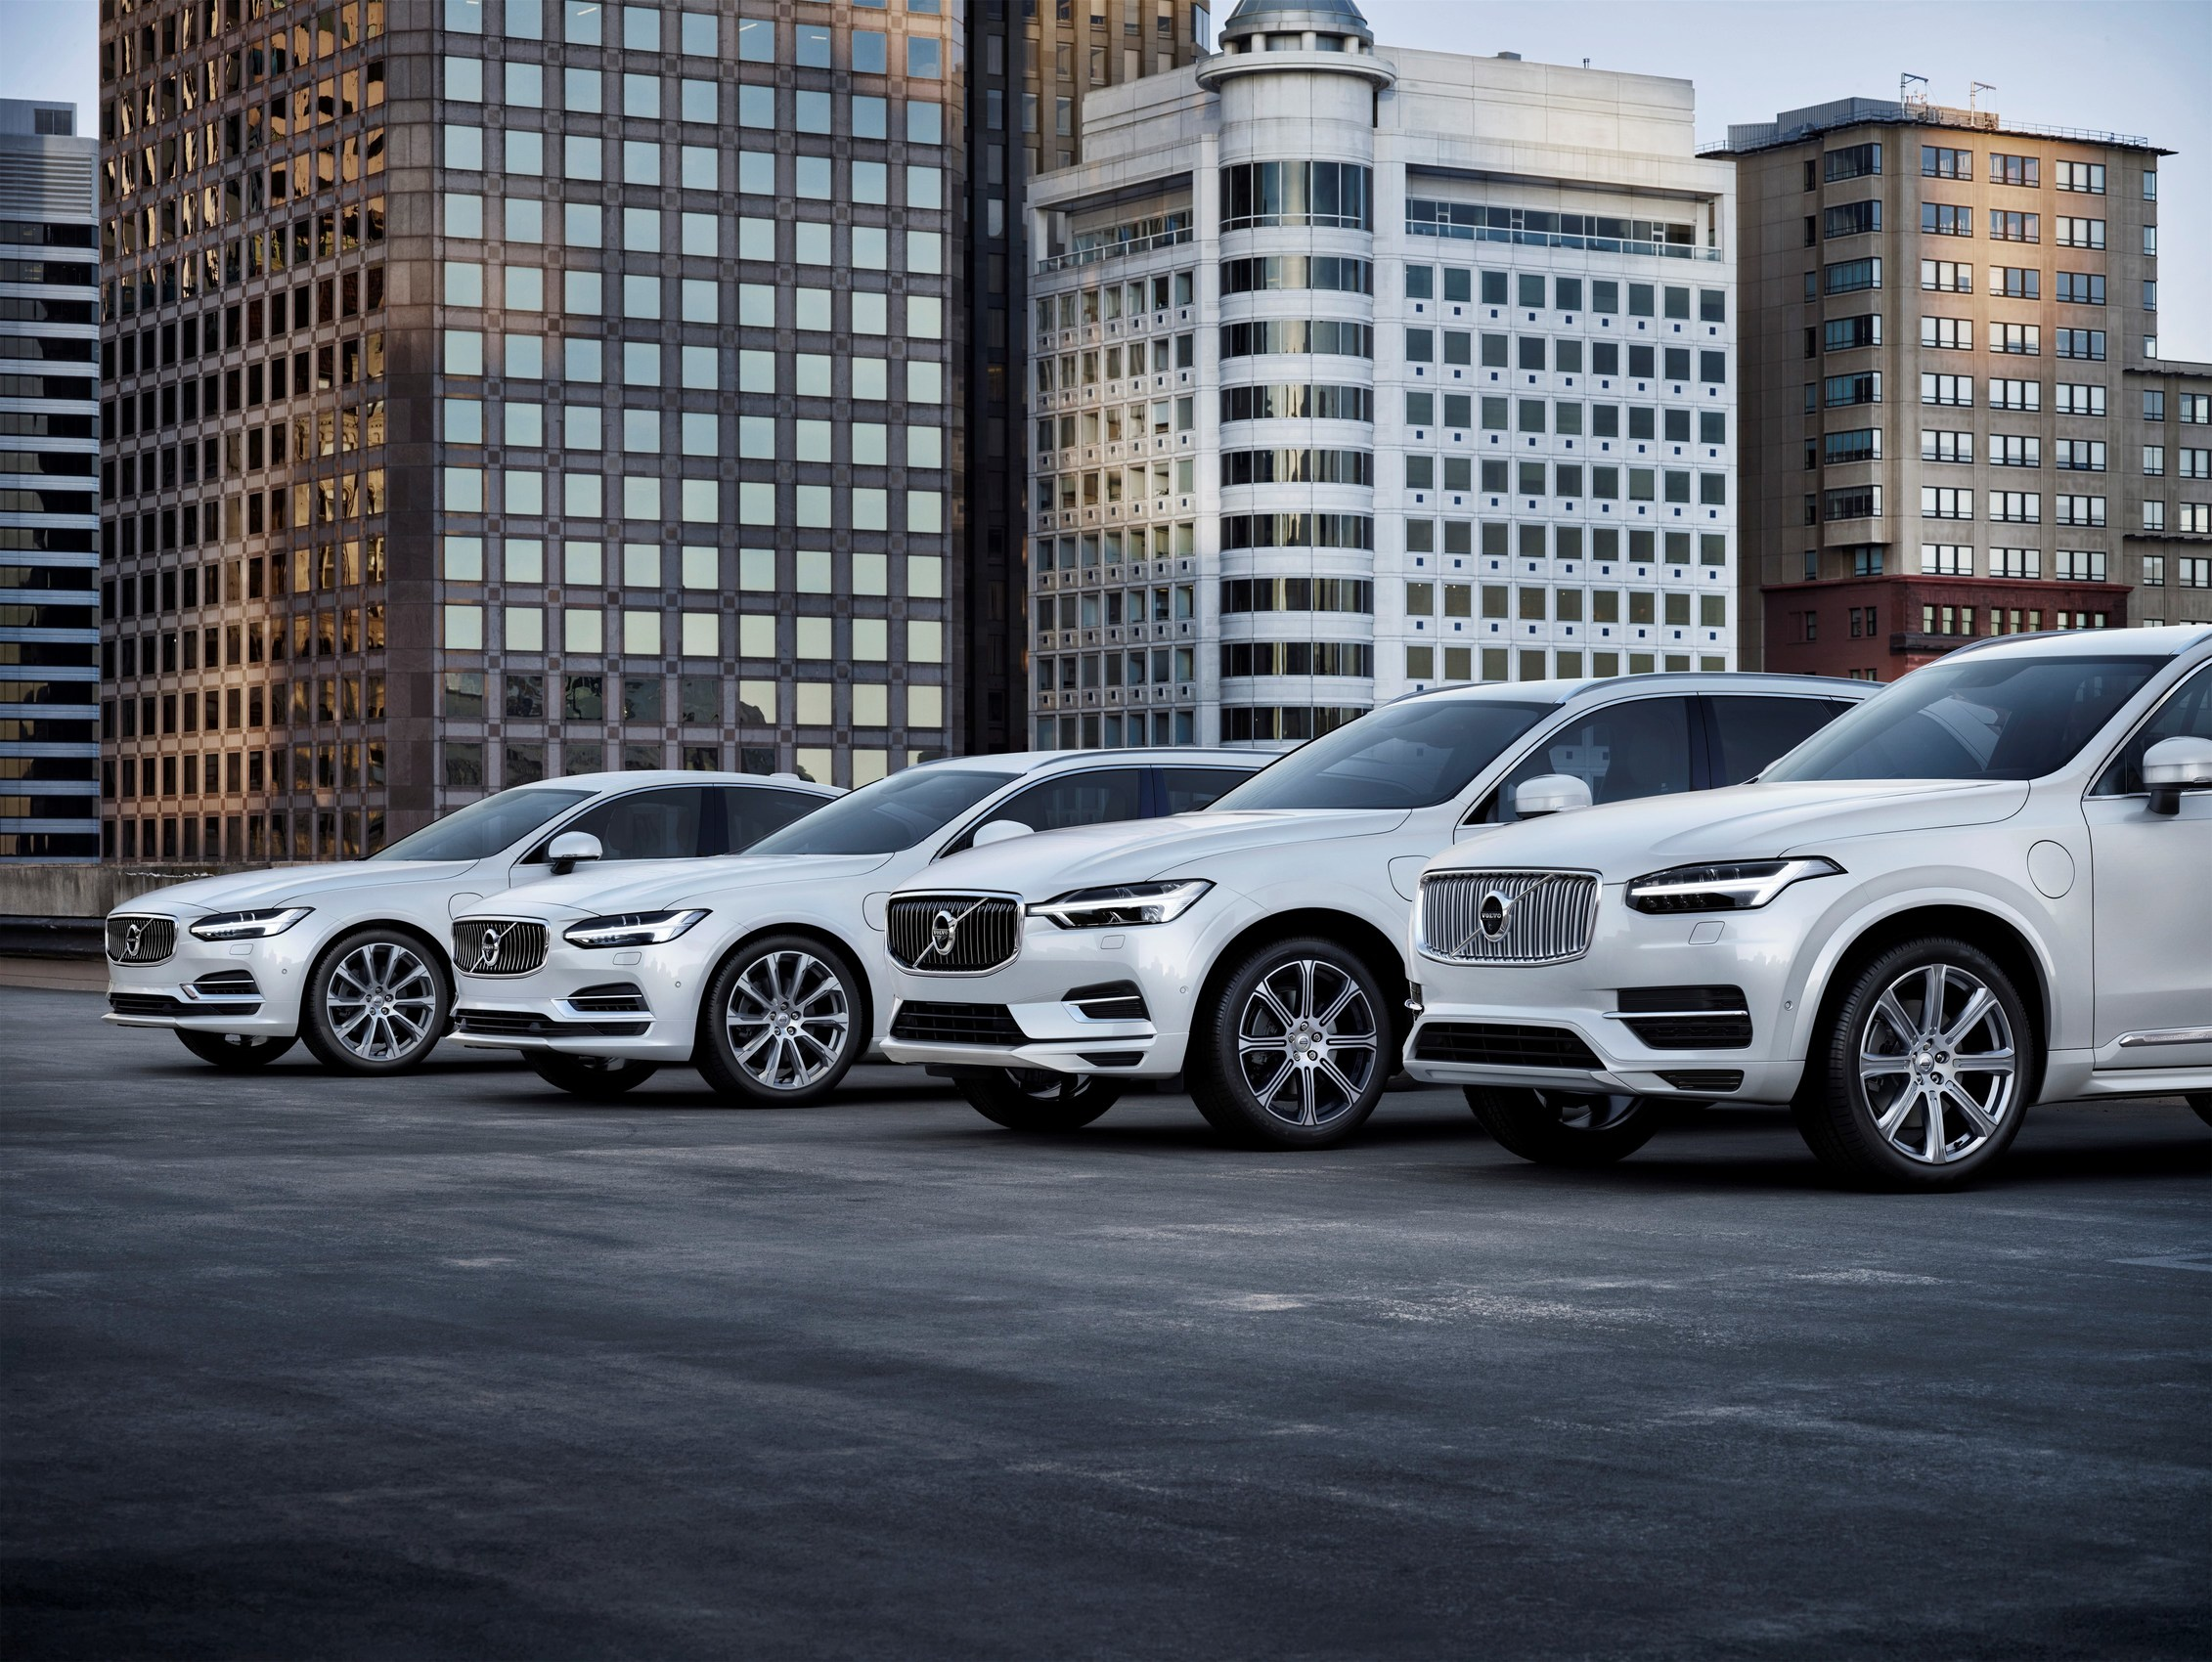 Volvo Cars Appoints Nahwasharq as Authorized Importer in KSA